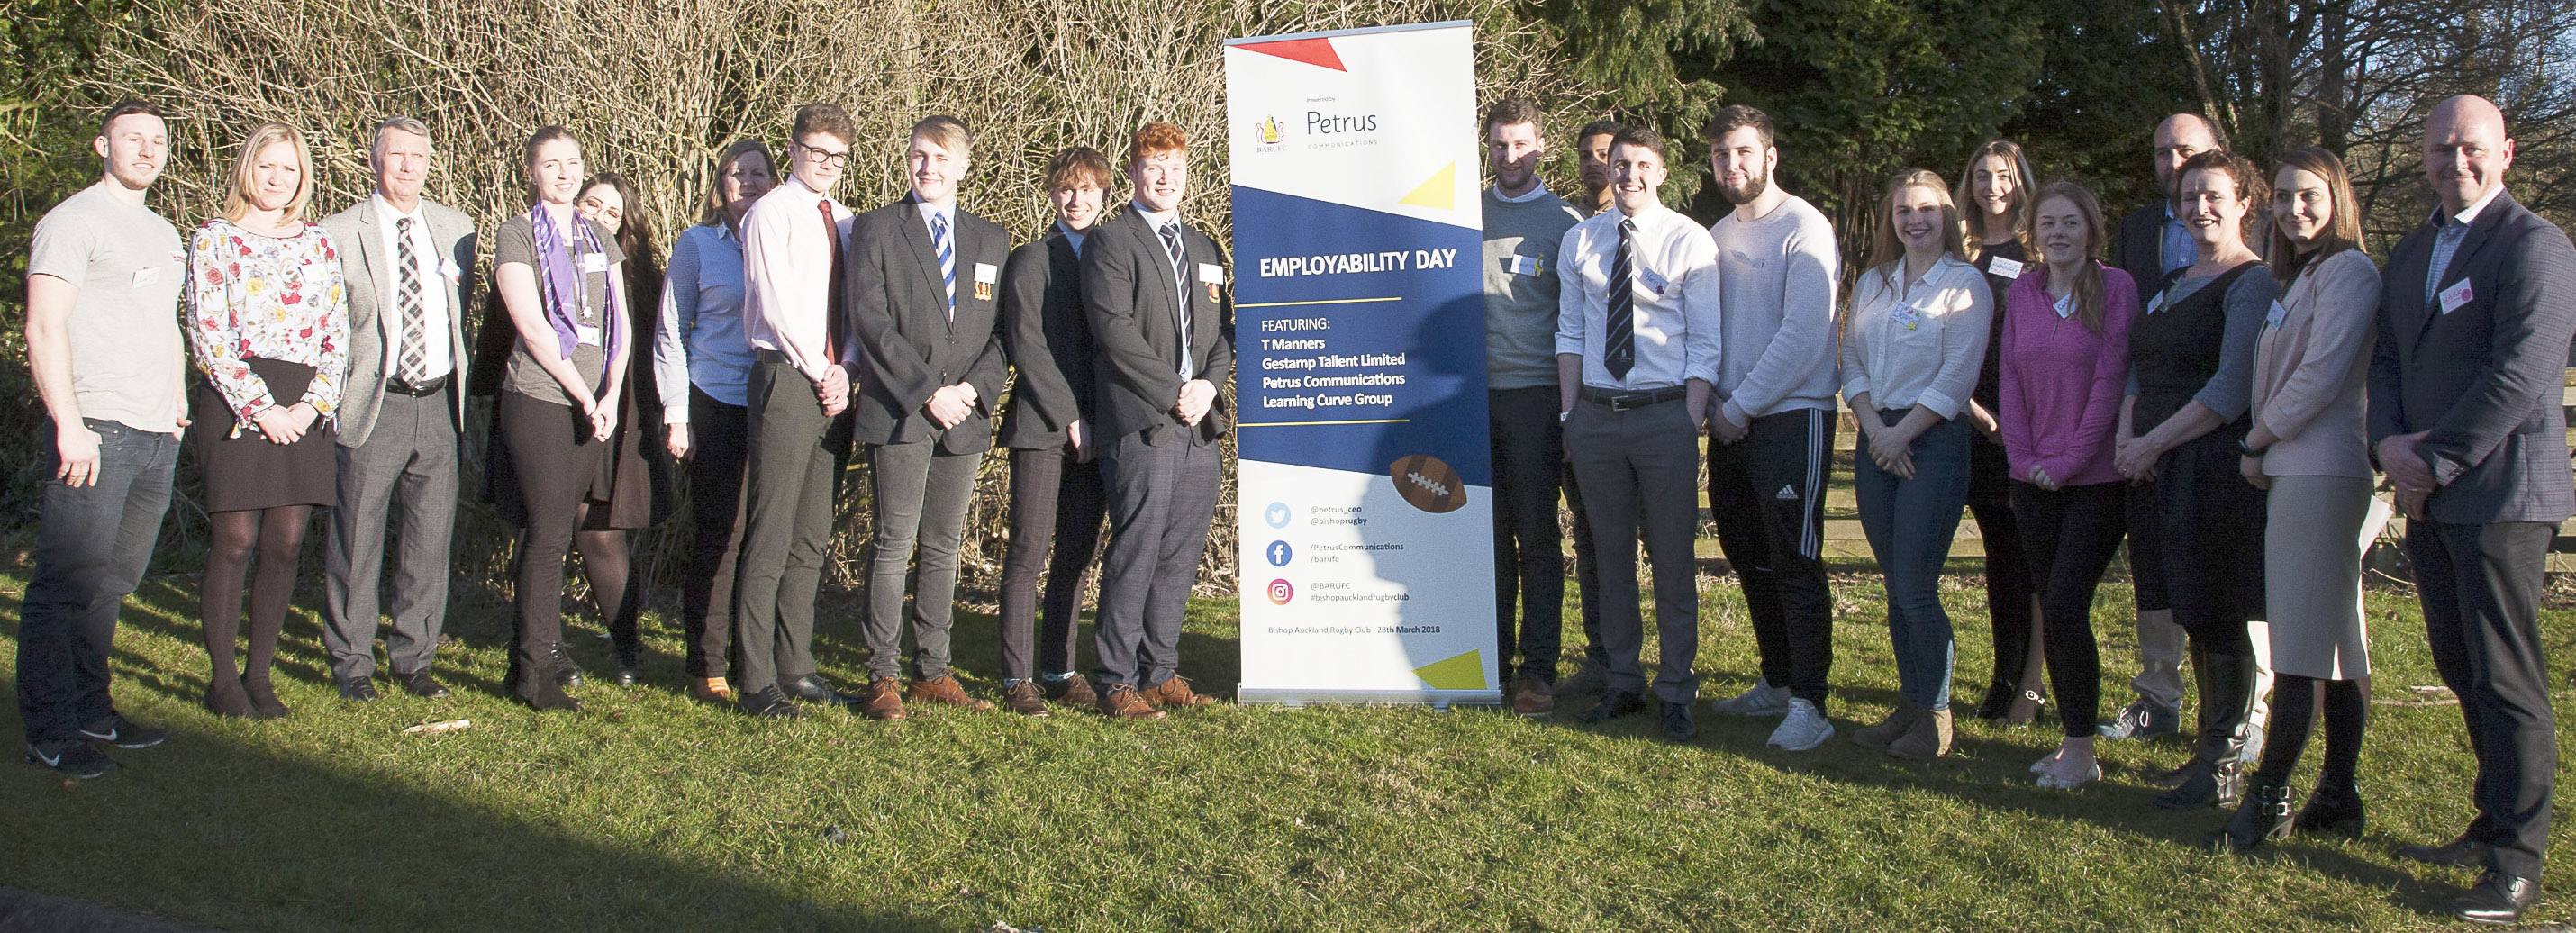 Employability Day for Rugby Junior Players